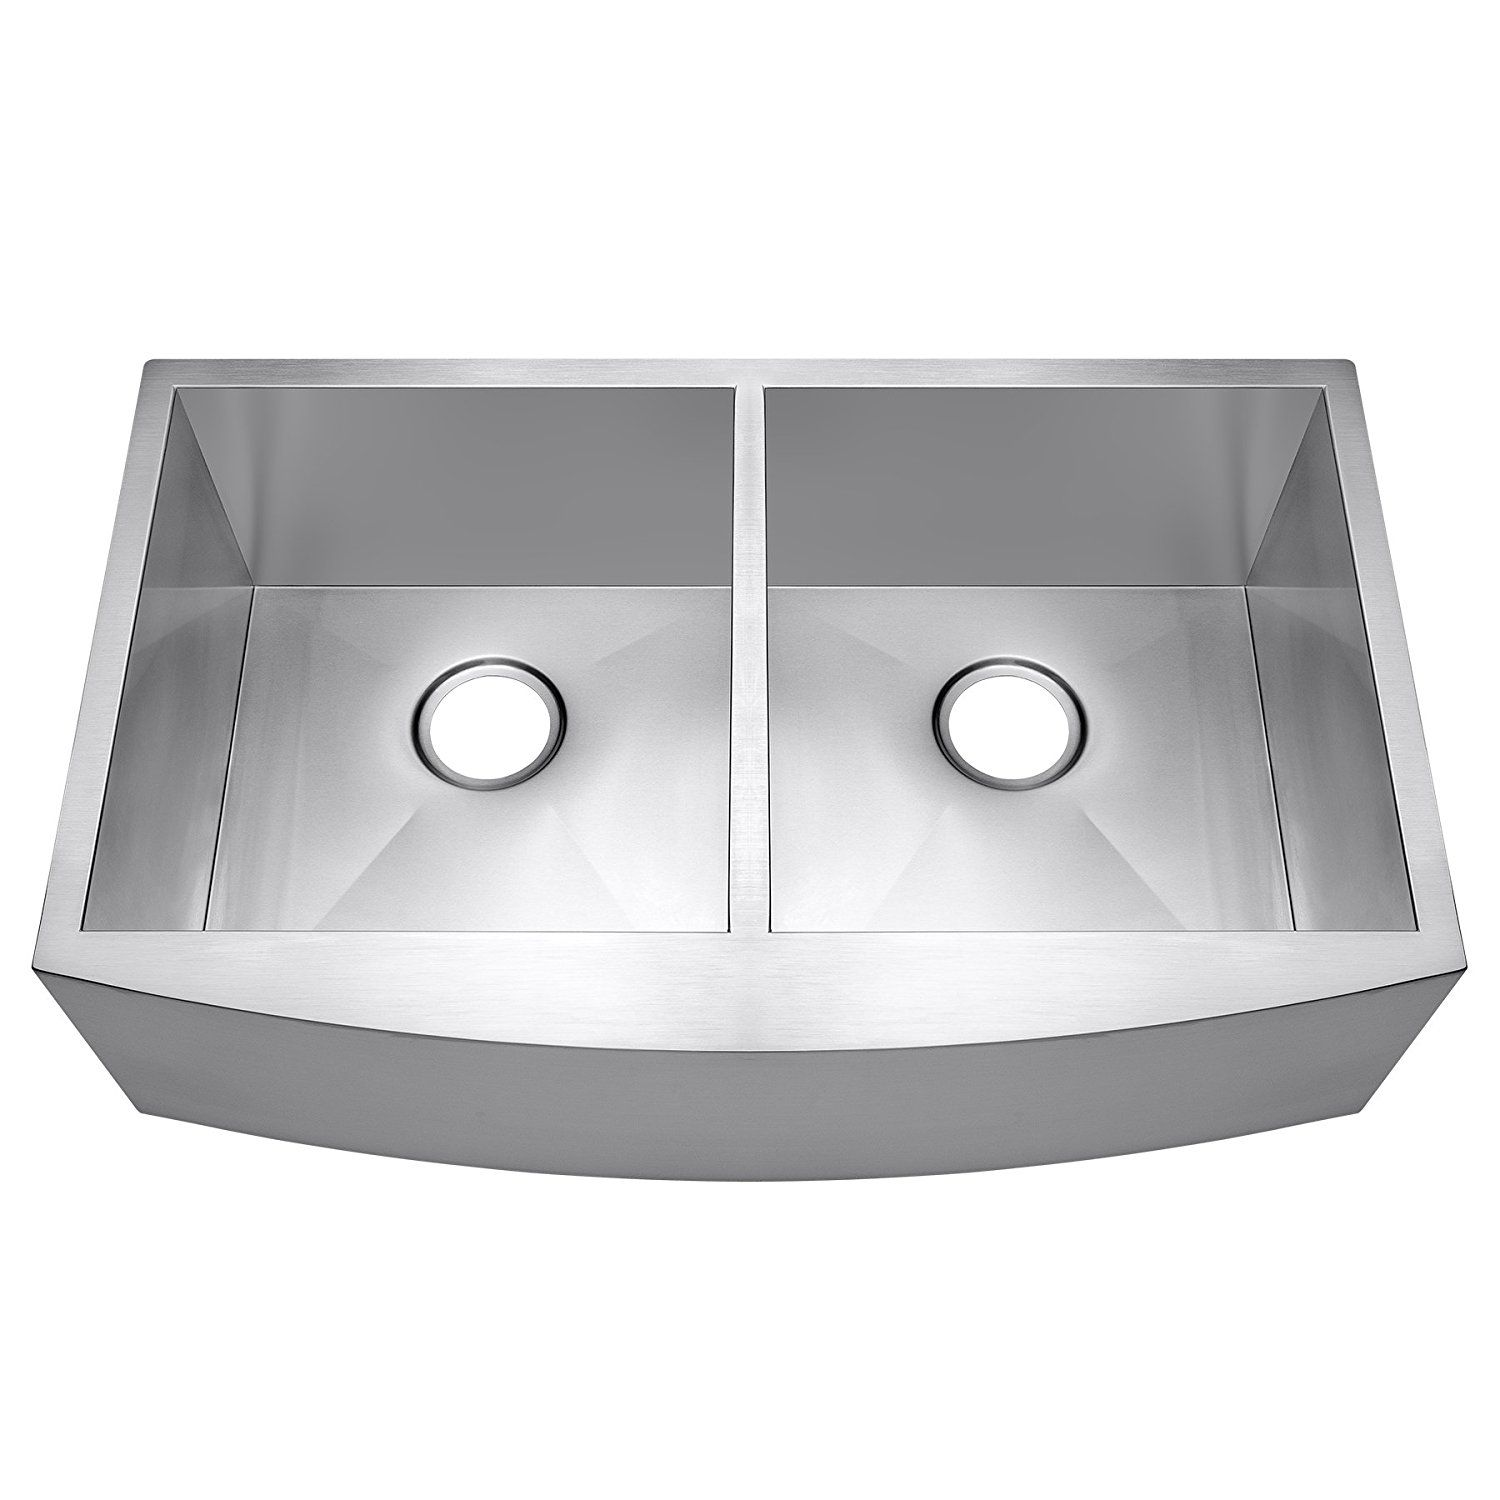 X Double Bowl Kitchen Sink